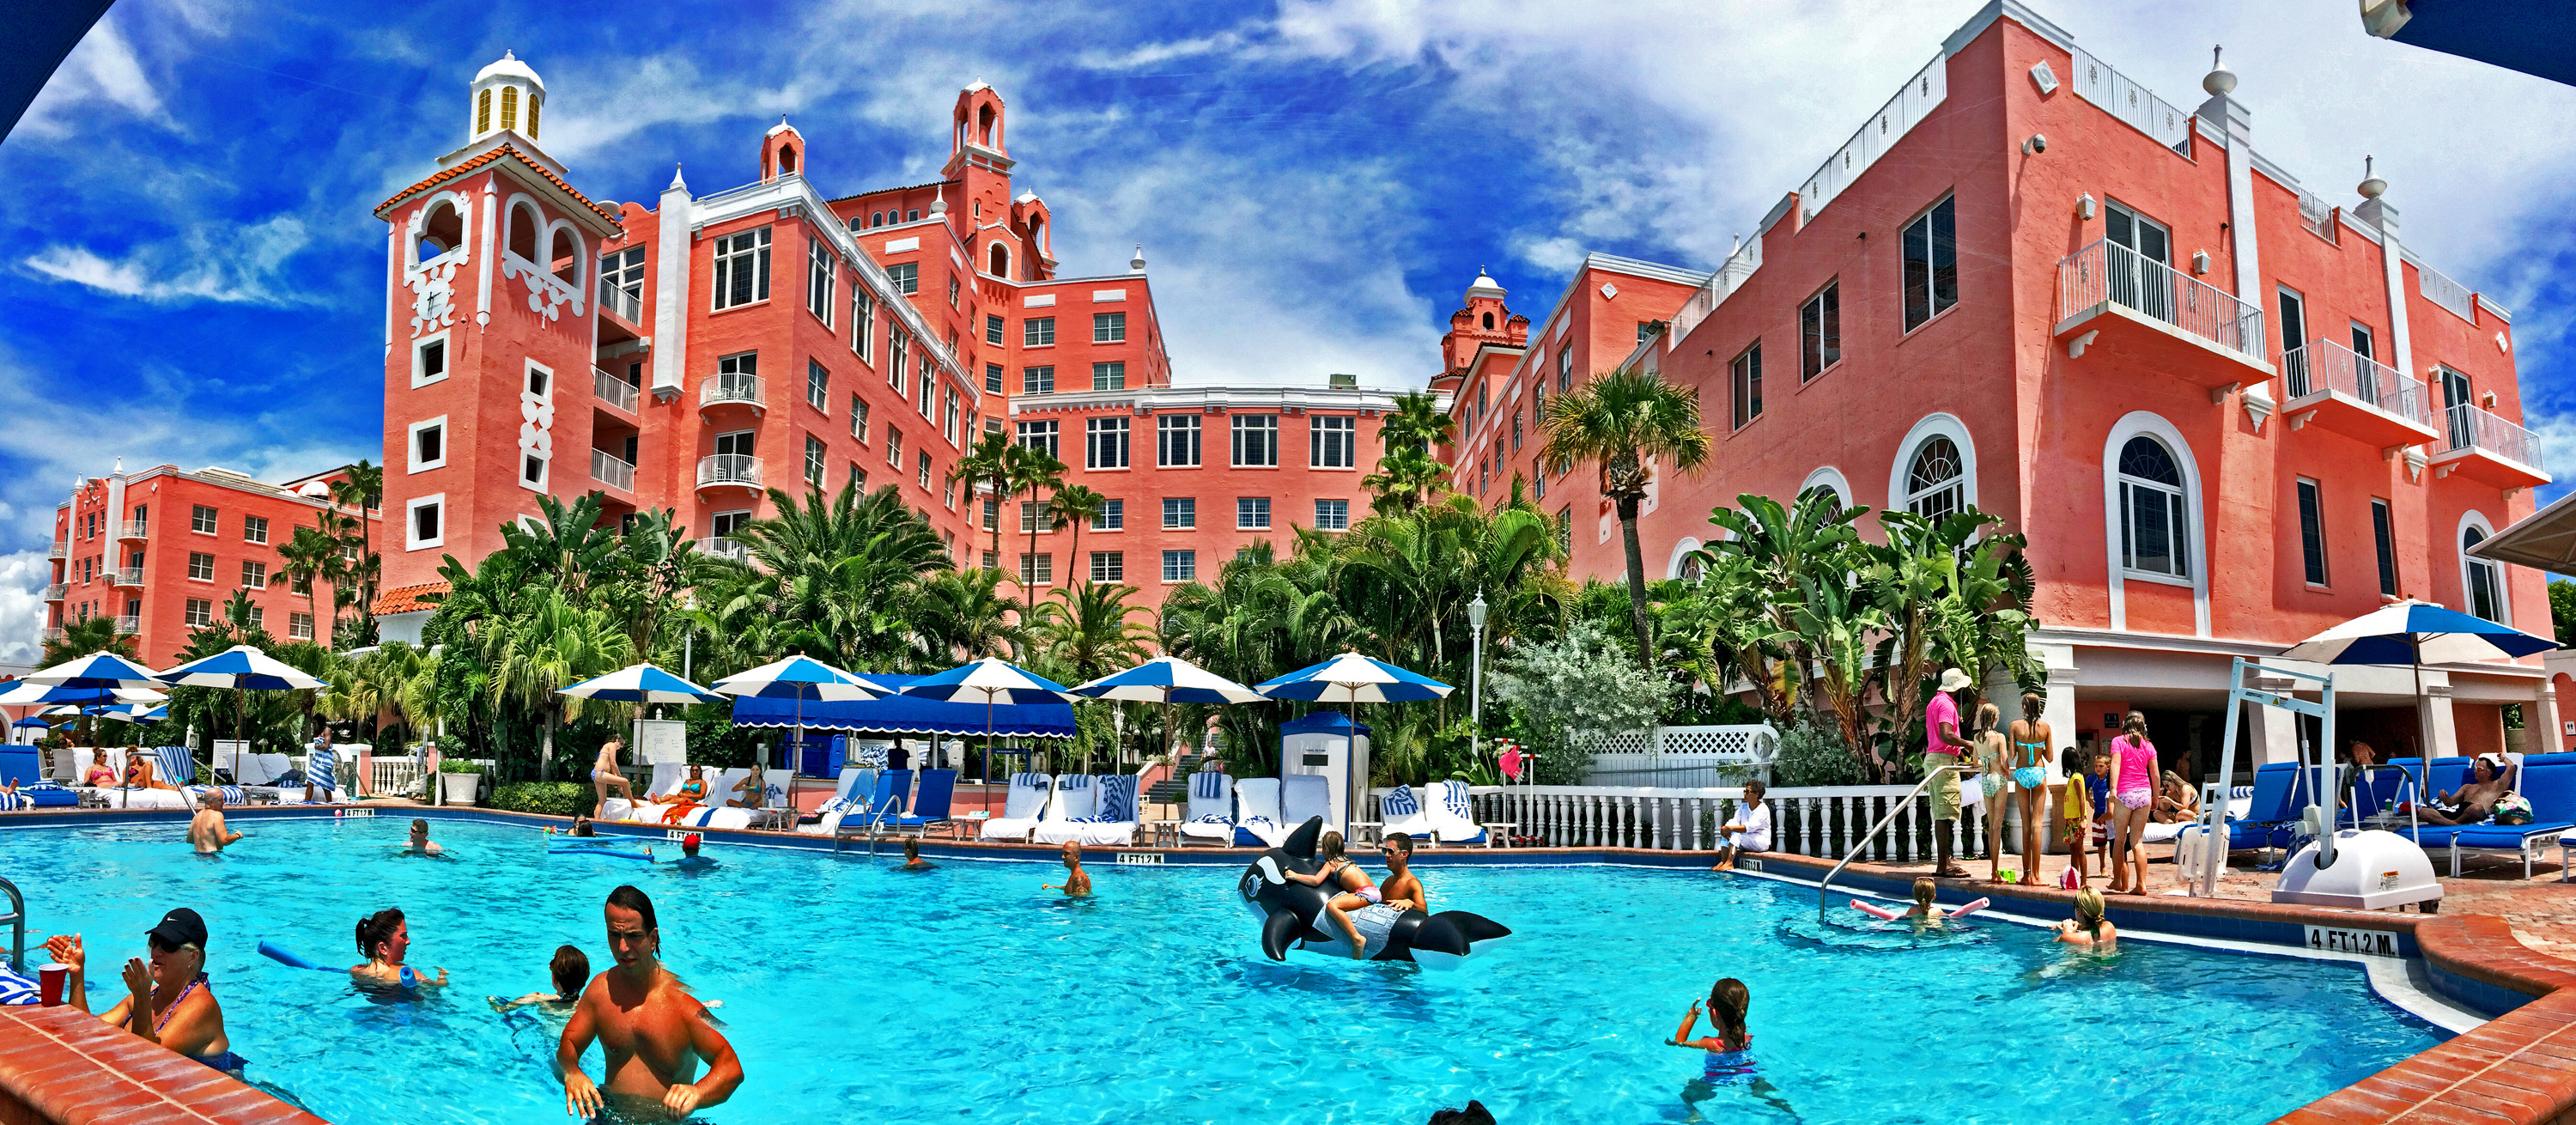 Loews Don CeSar Hotel Pool